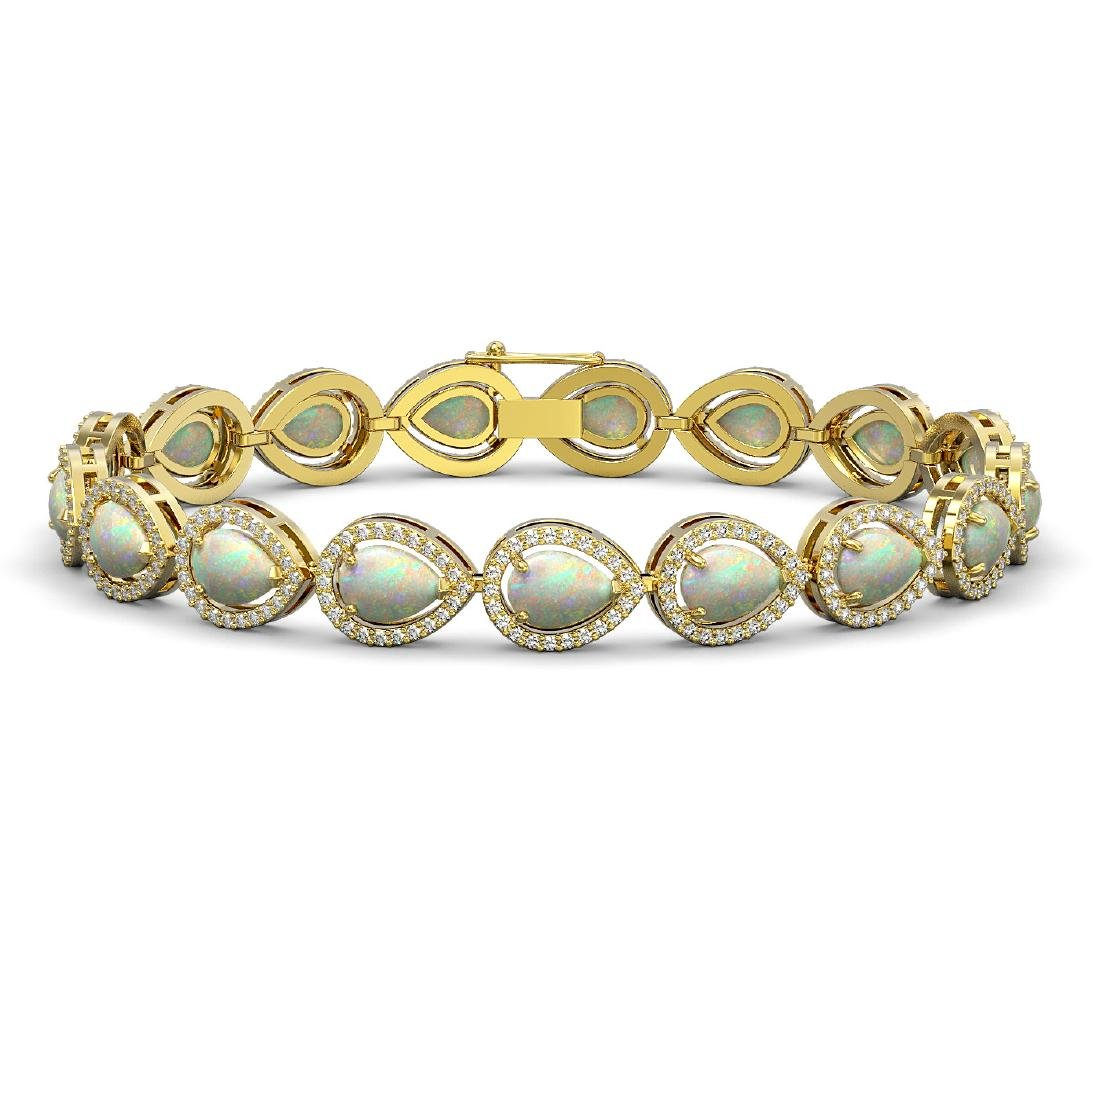 13.19 CTW Opal & Diamond Halo Bracelet 10K Yellow Gold